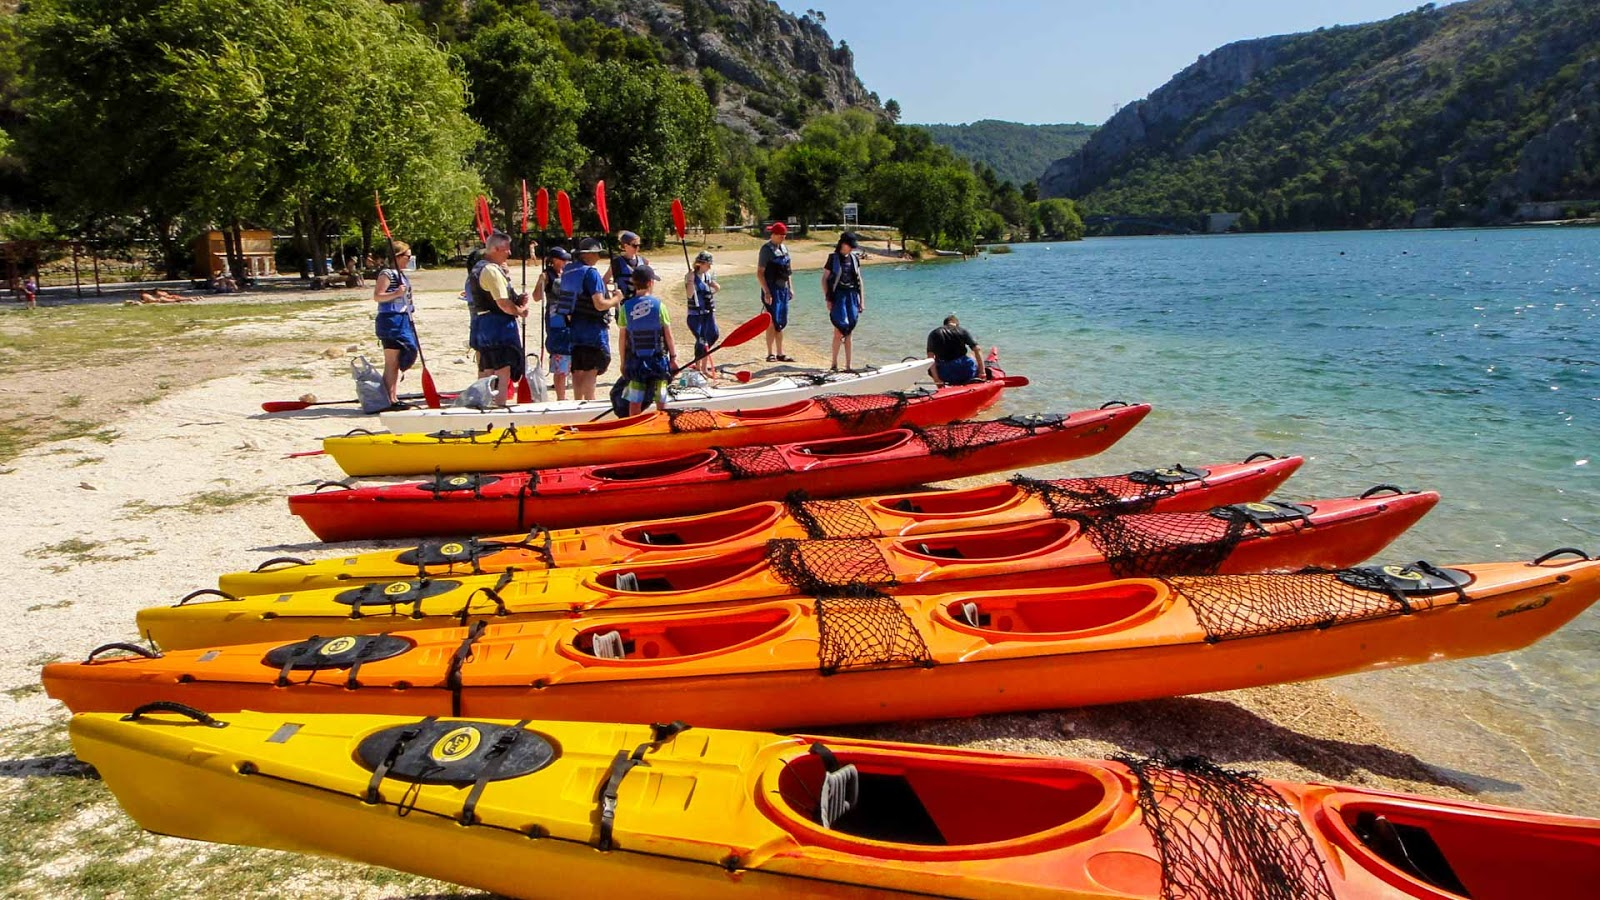 Sea-kayaking-Skradin-bay-Croatia-Raftrek-travel-1-of-1